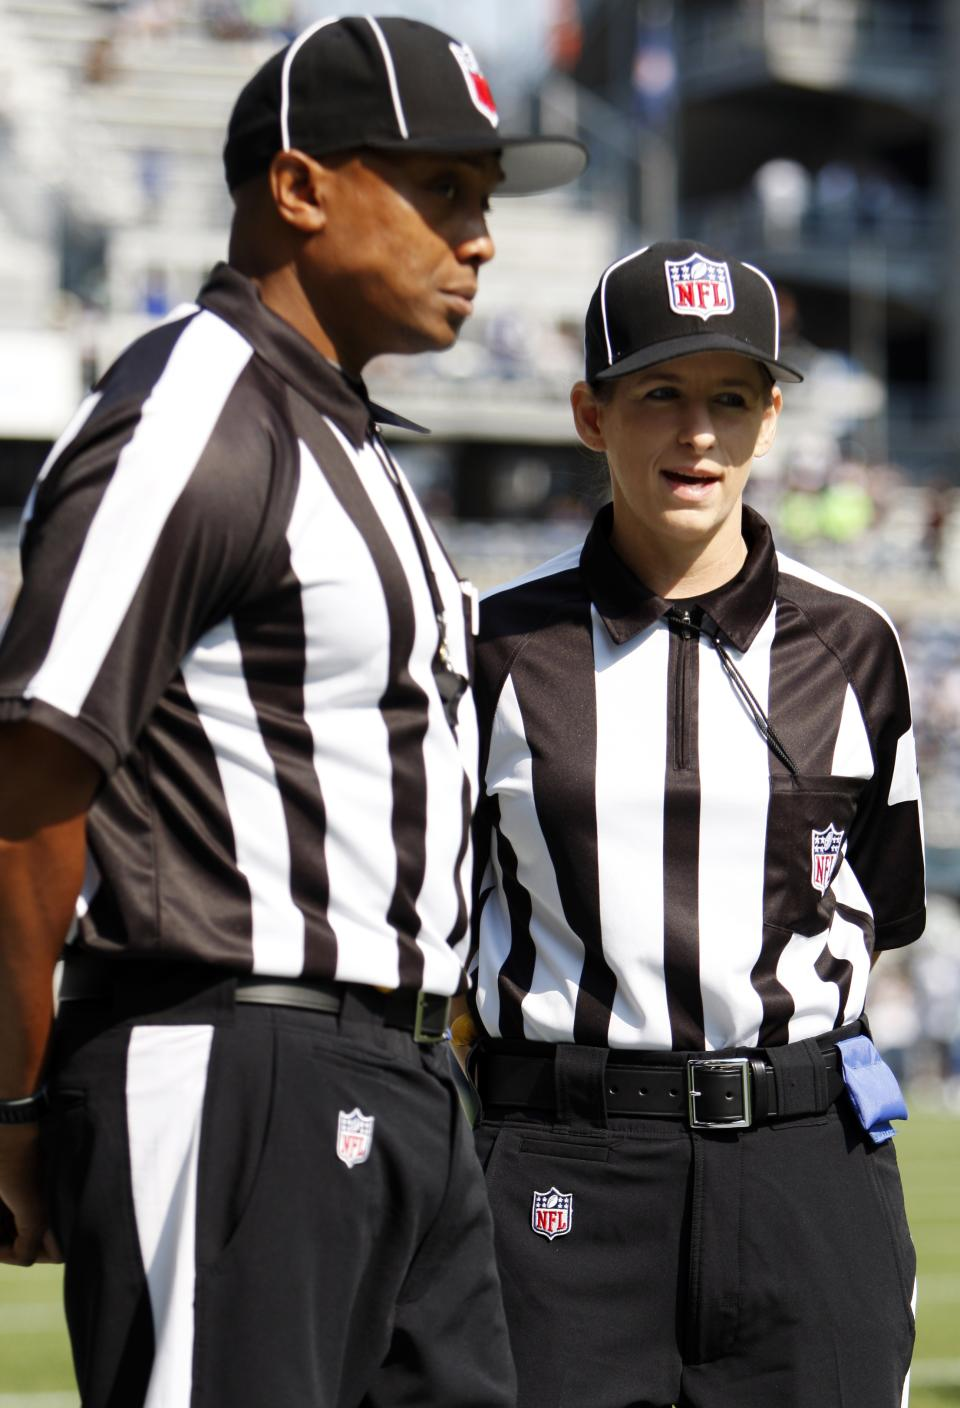 Official Shannon Eastin, right, talks with another official before an NFL football game between the Dallas Cowboys and Seattle Seahawks, Sunday, Sept. 16, 2012, in Seattle. (AP Photo/Kevin P. Casey)